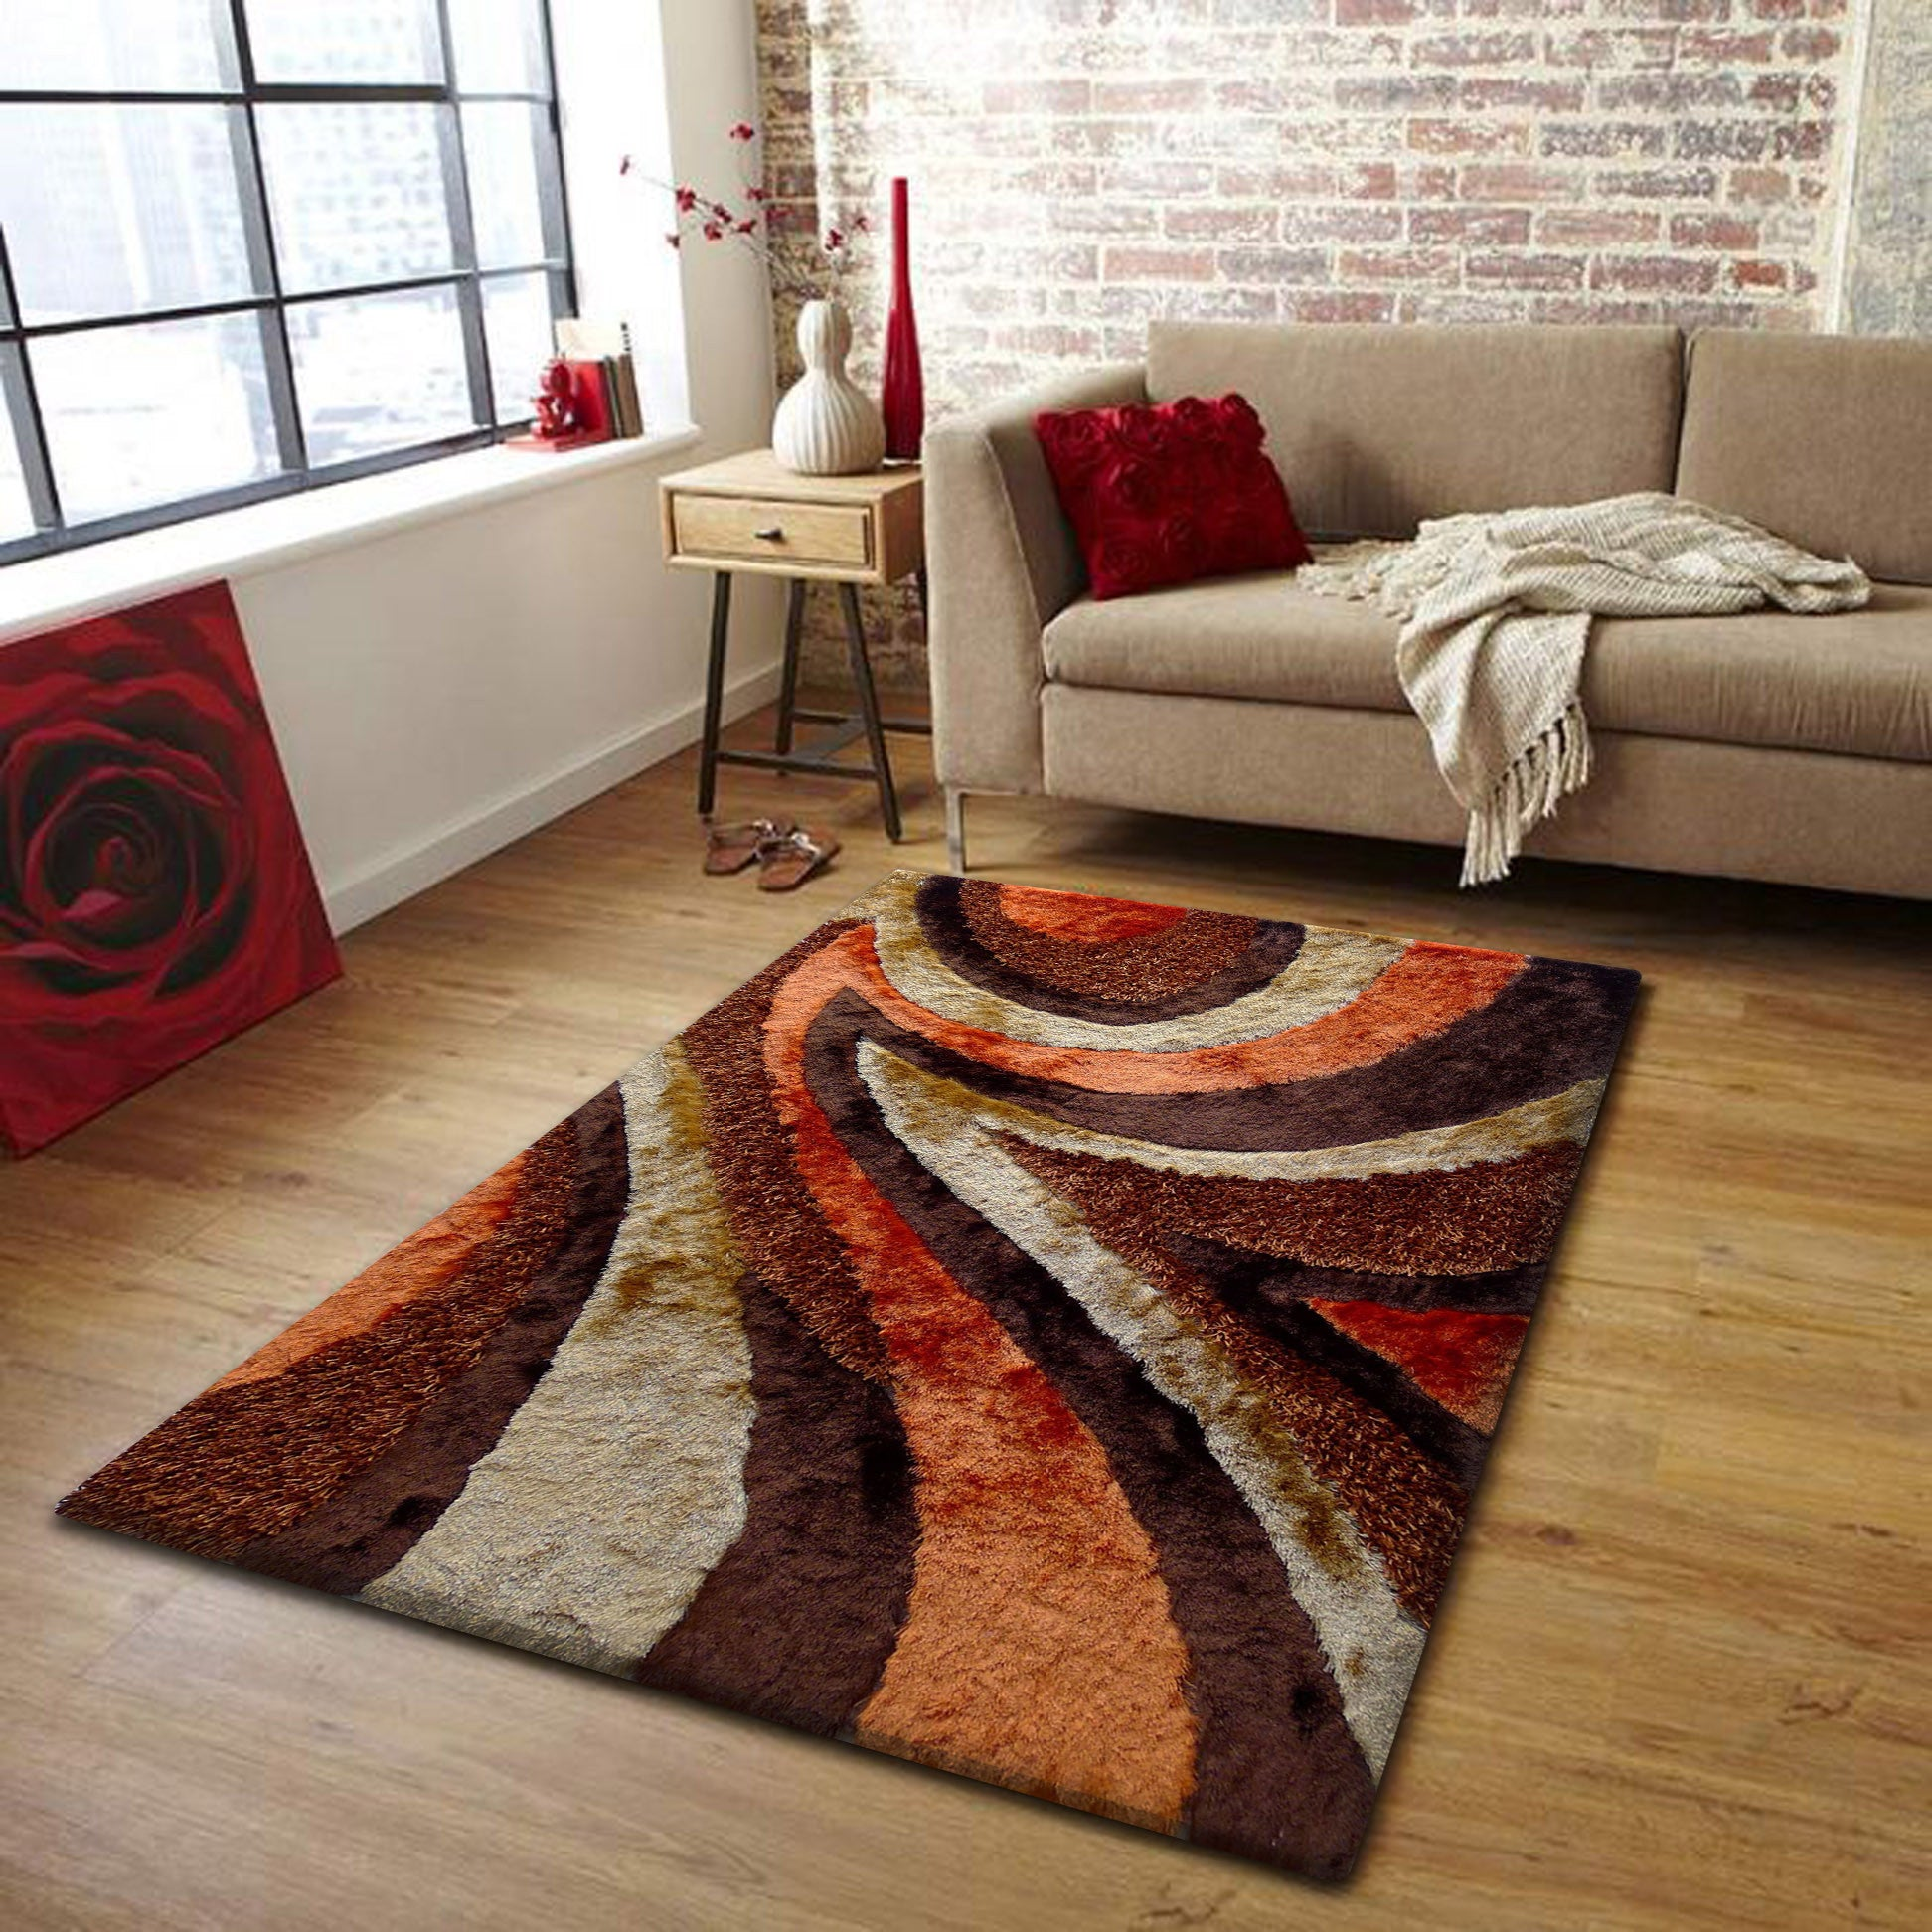 orange - rug addiction